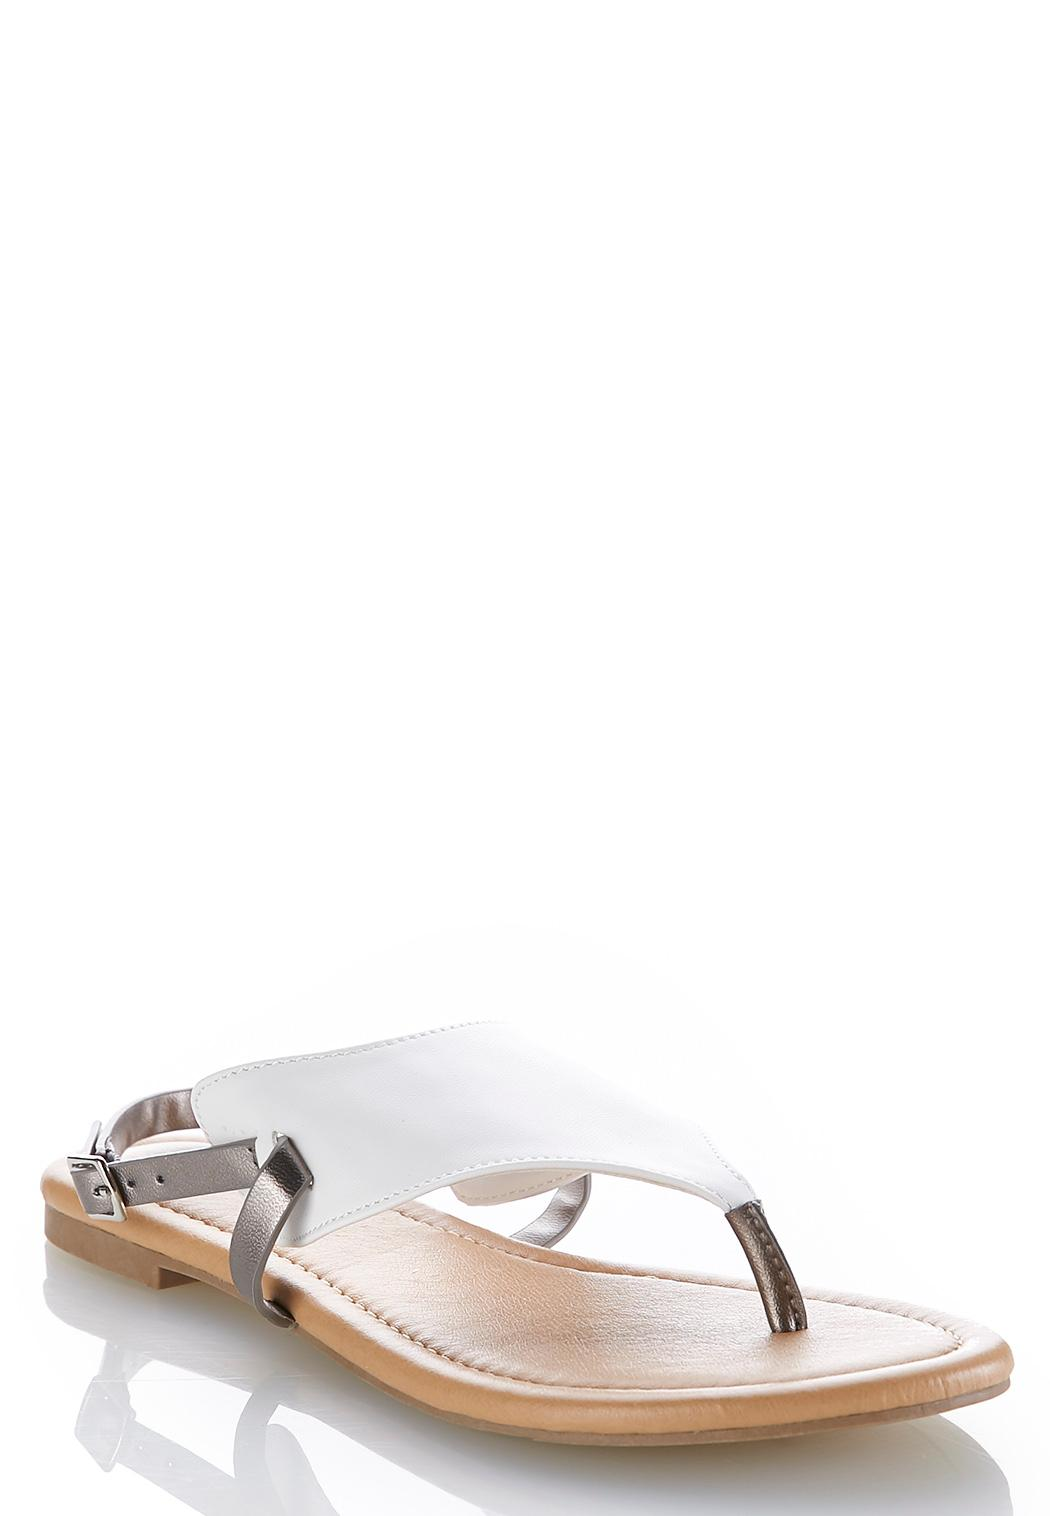 aa4c8723f5fc Faux Leather Thong Sandals alternate view · Faux Leather Thong Sandals